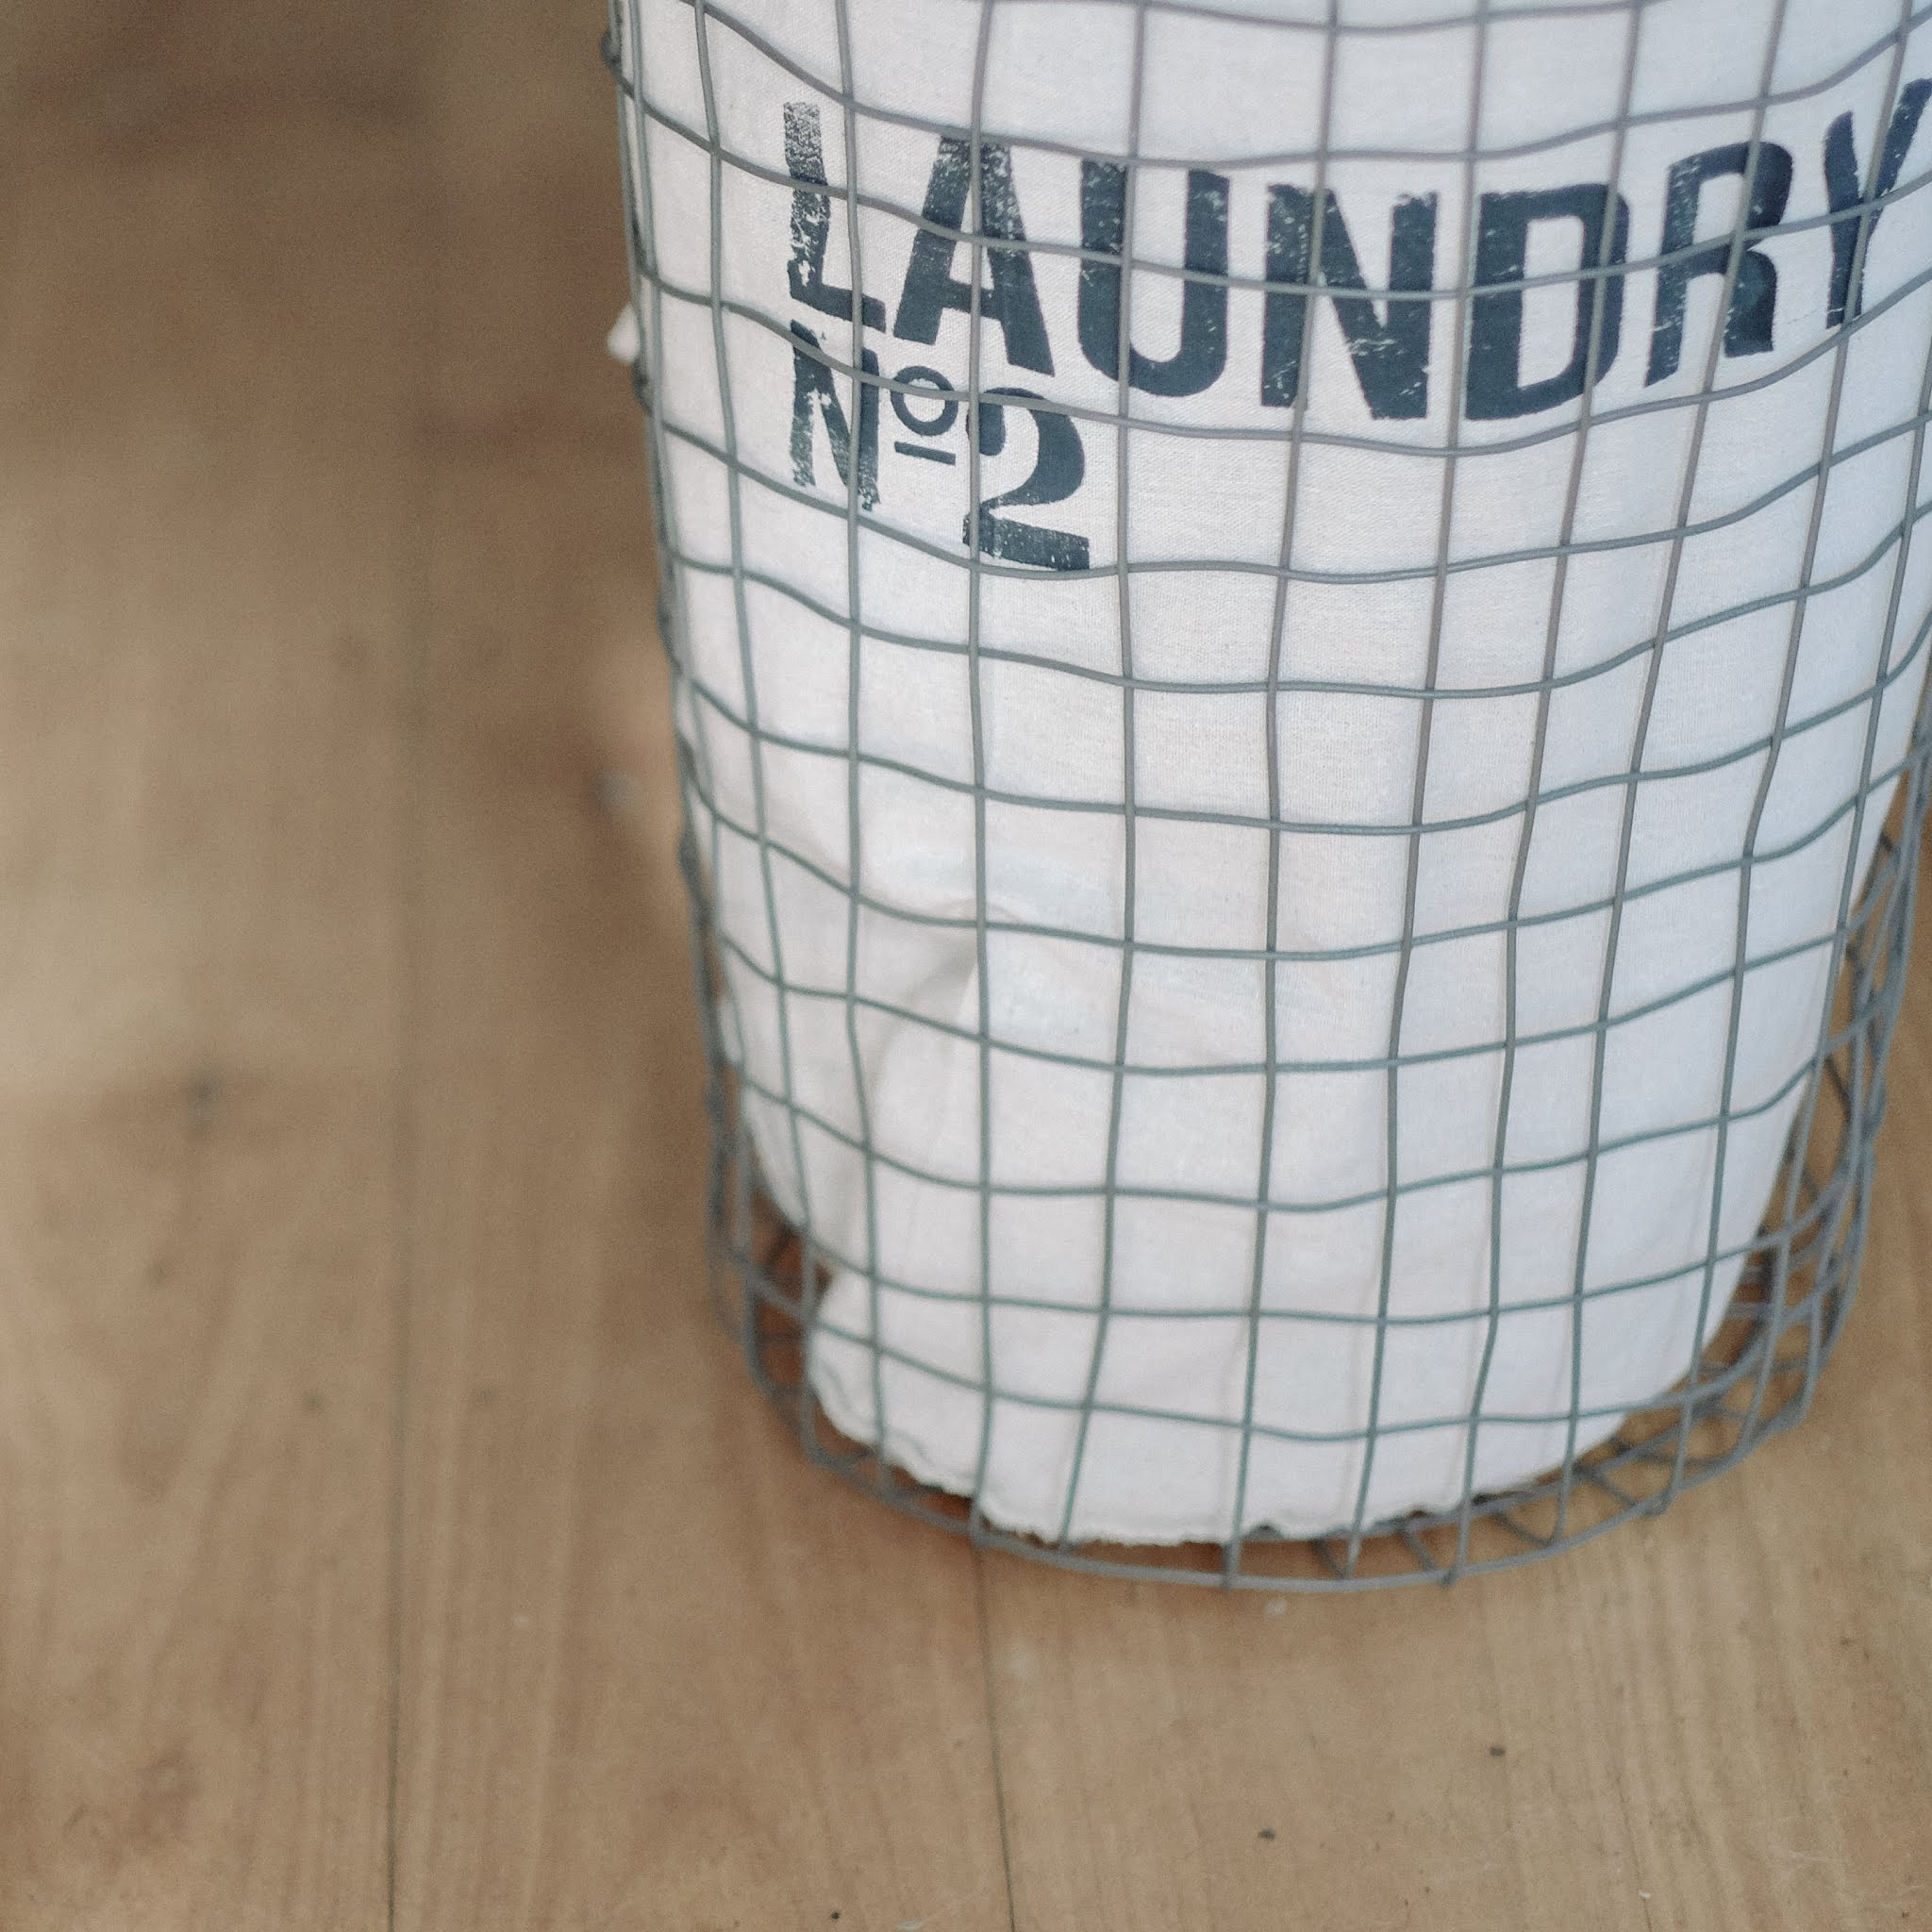 Renovating our laundry room in only eight weeks on a DIY fixer-upper budget